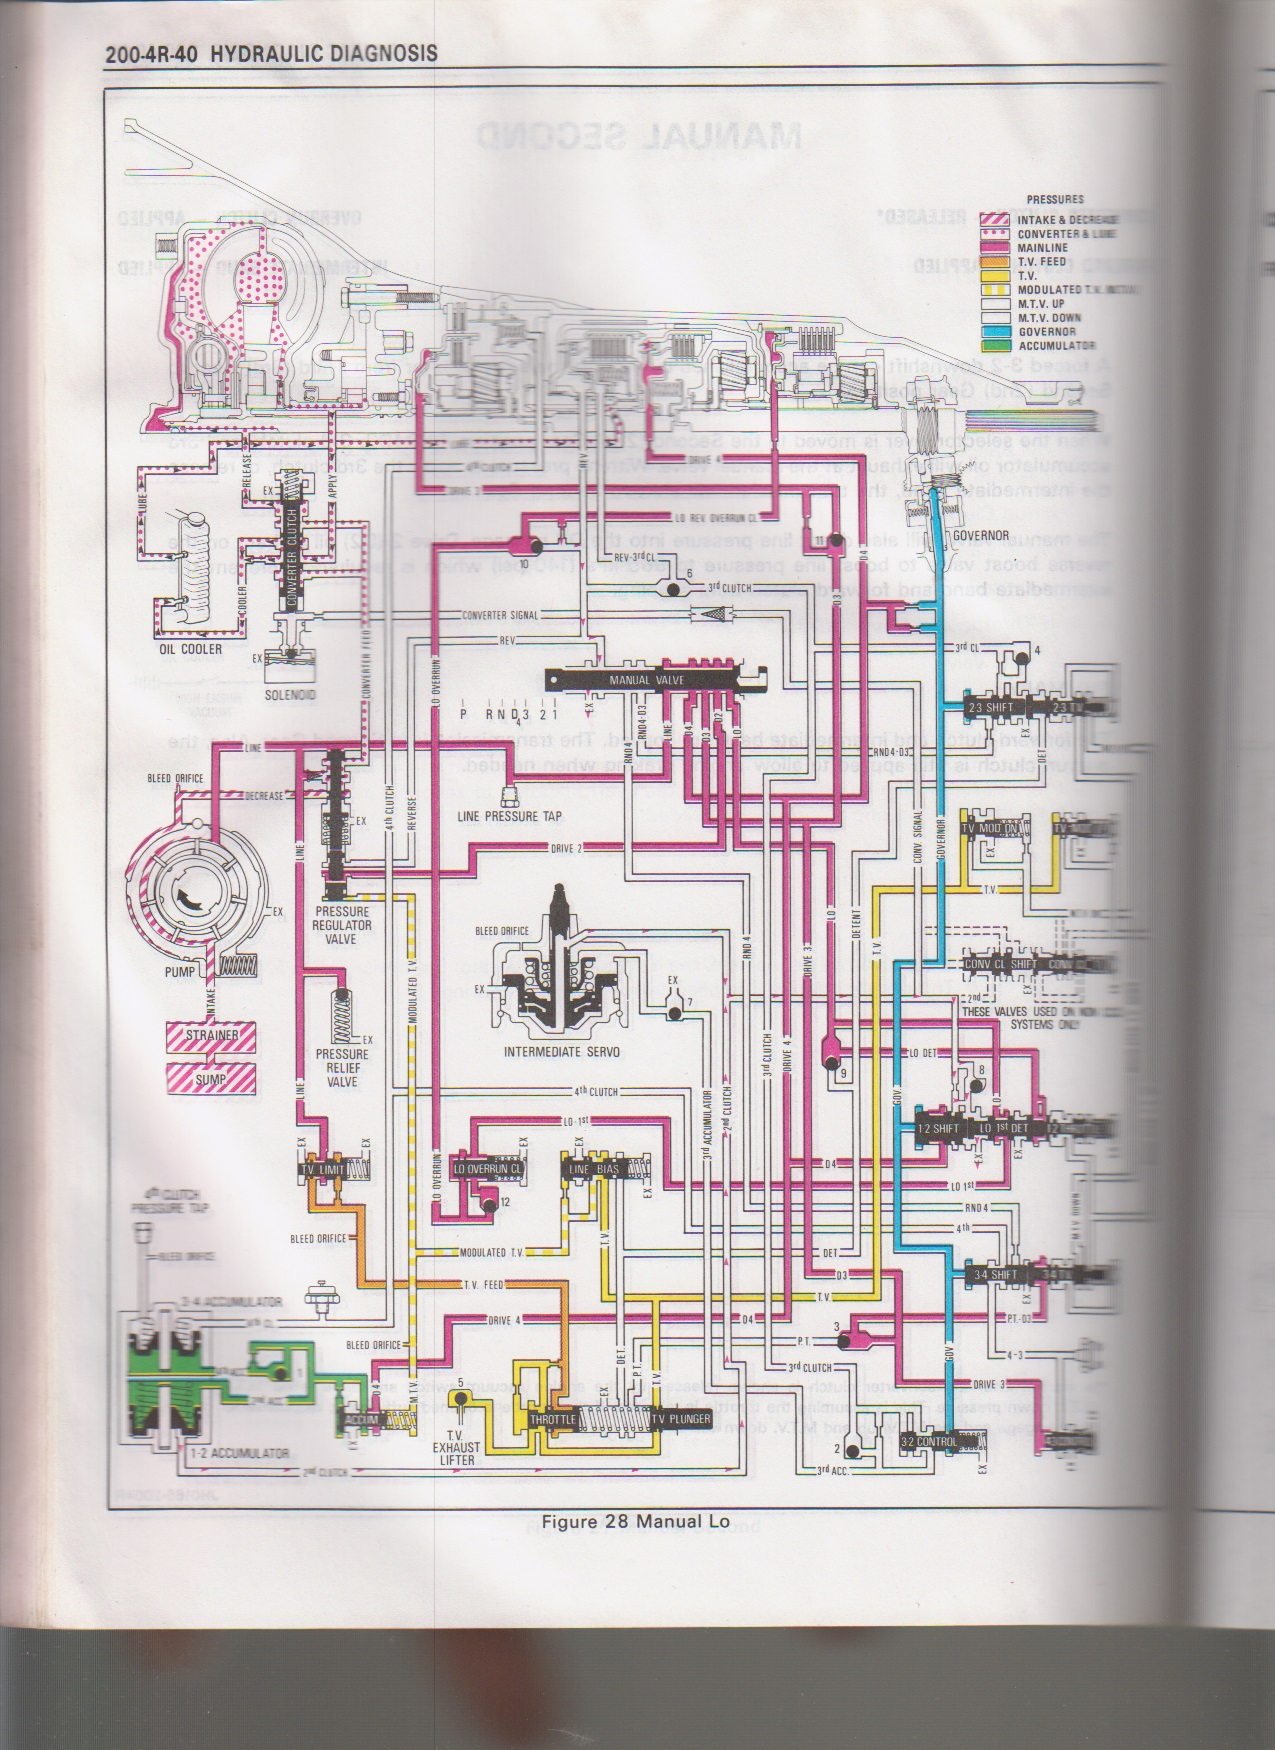 Lovely 200r4 wiring diagram images the best electrical circuit 200r4 lockup wiring diagram with taco 570 zone valve wiring asfbconference2016 Image collections